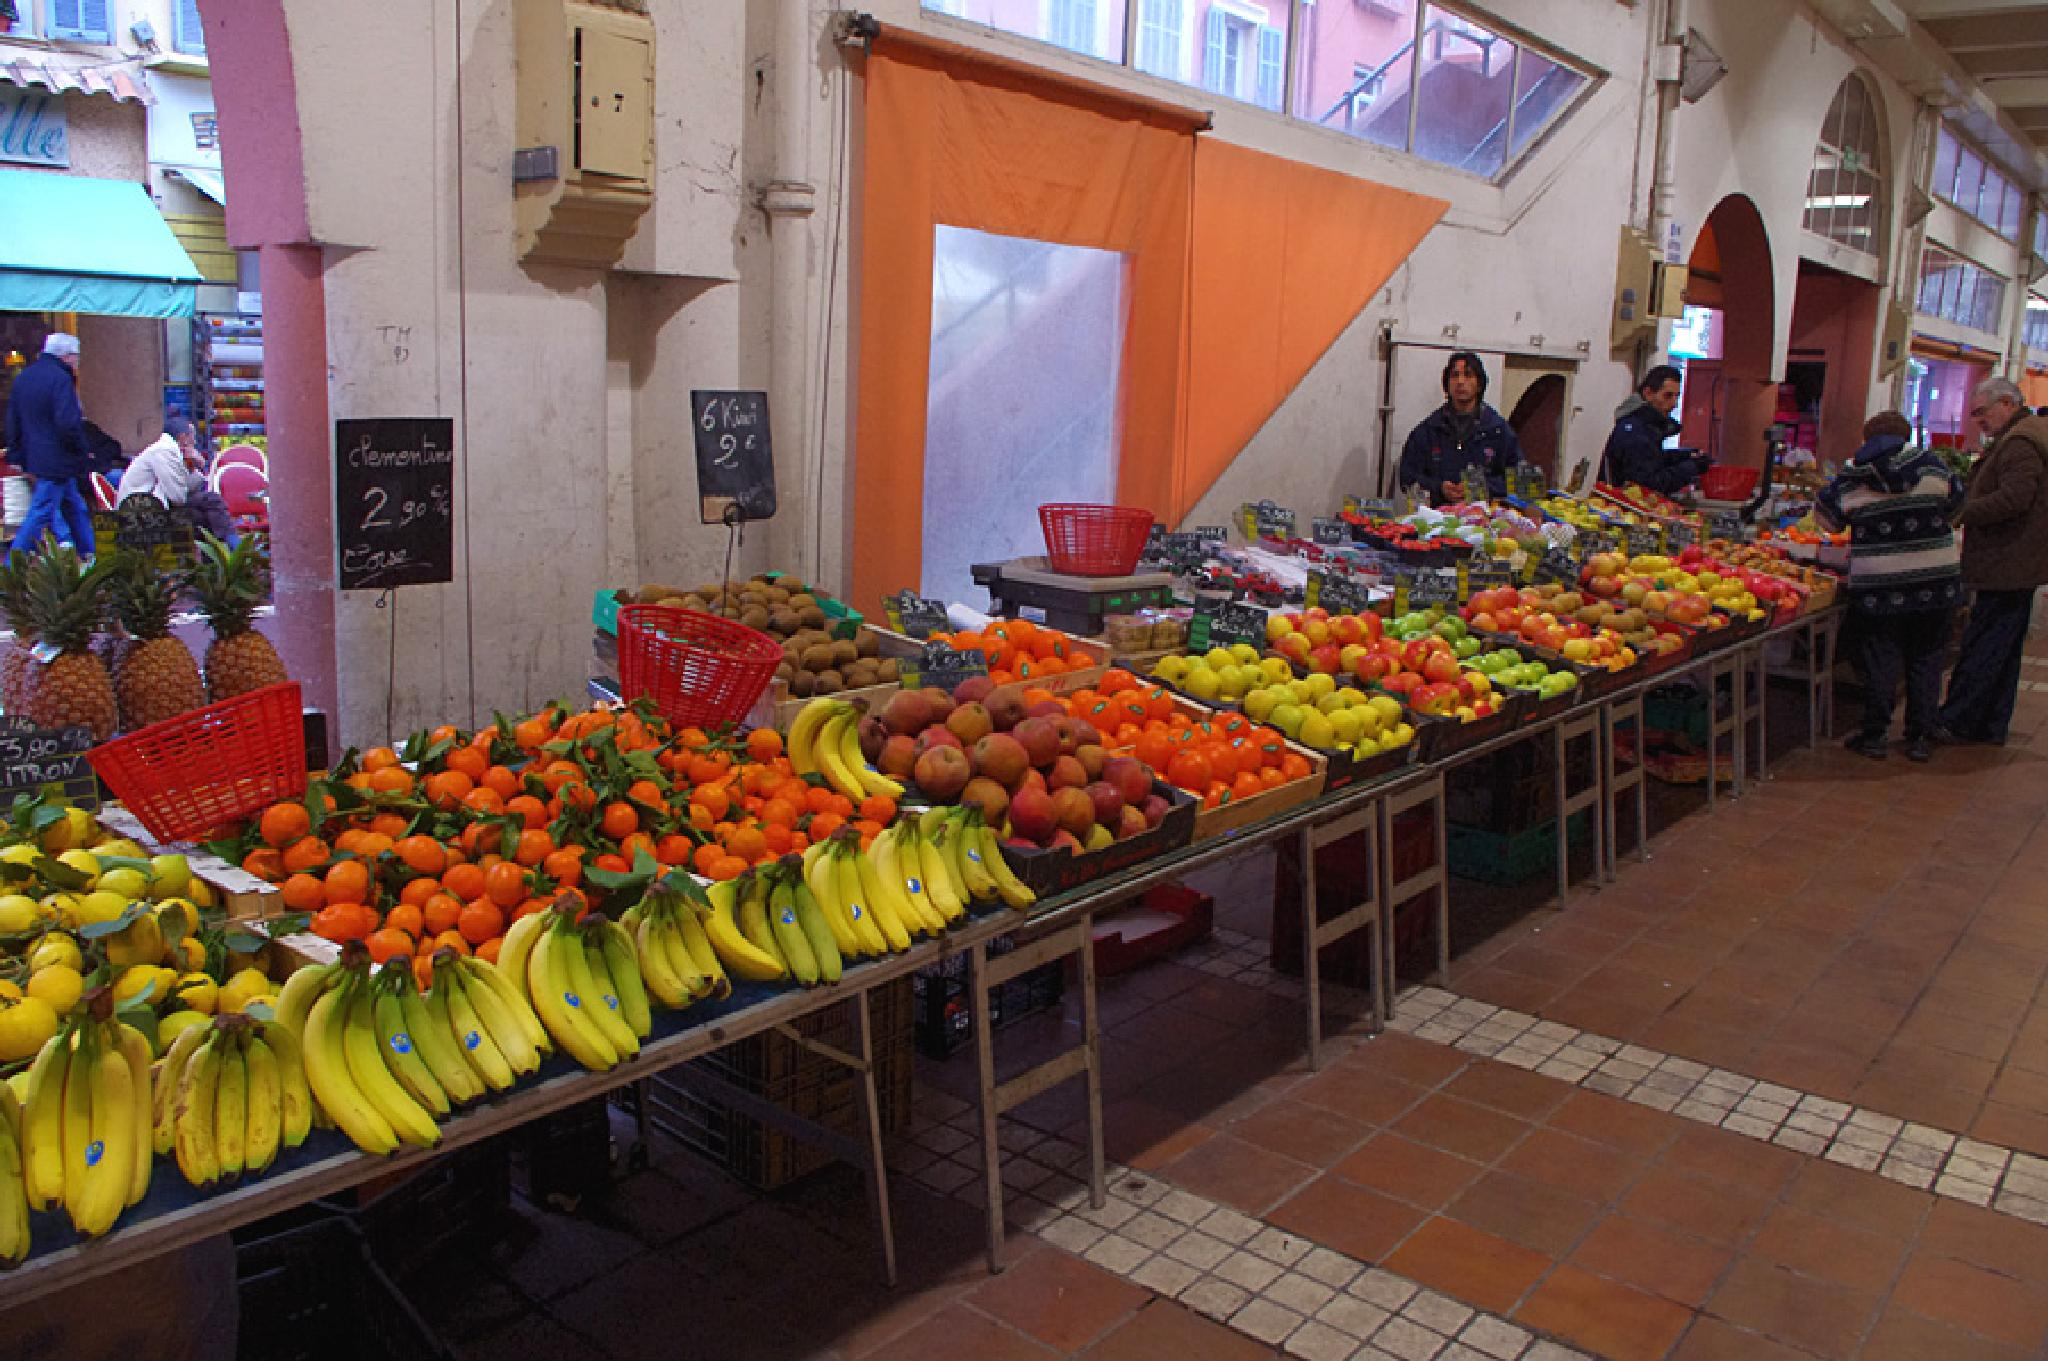 Cannes Food Market 30 December 2010 by Owen Smithers